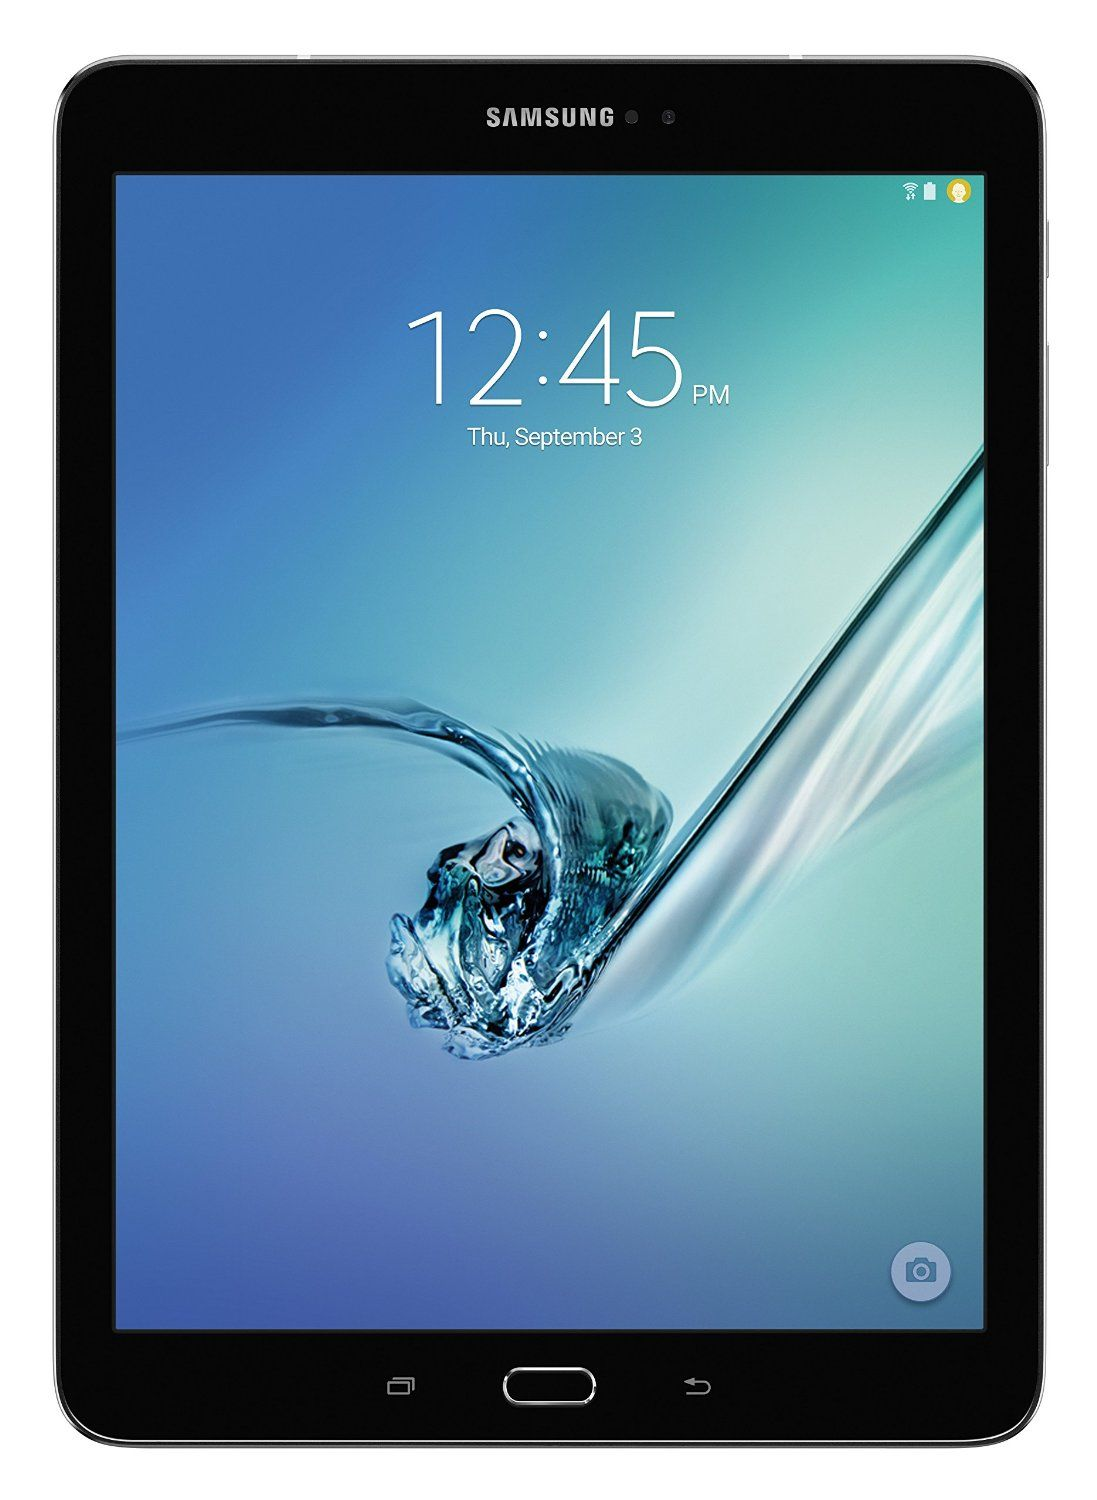 samsung galaxy tab s2 97 sm t810nzdexar 32gb black now